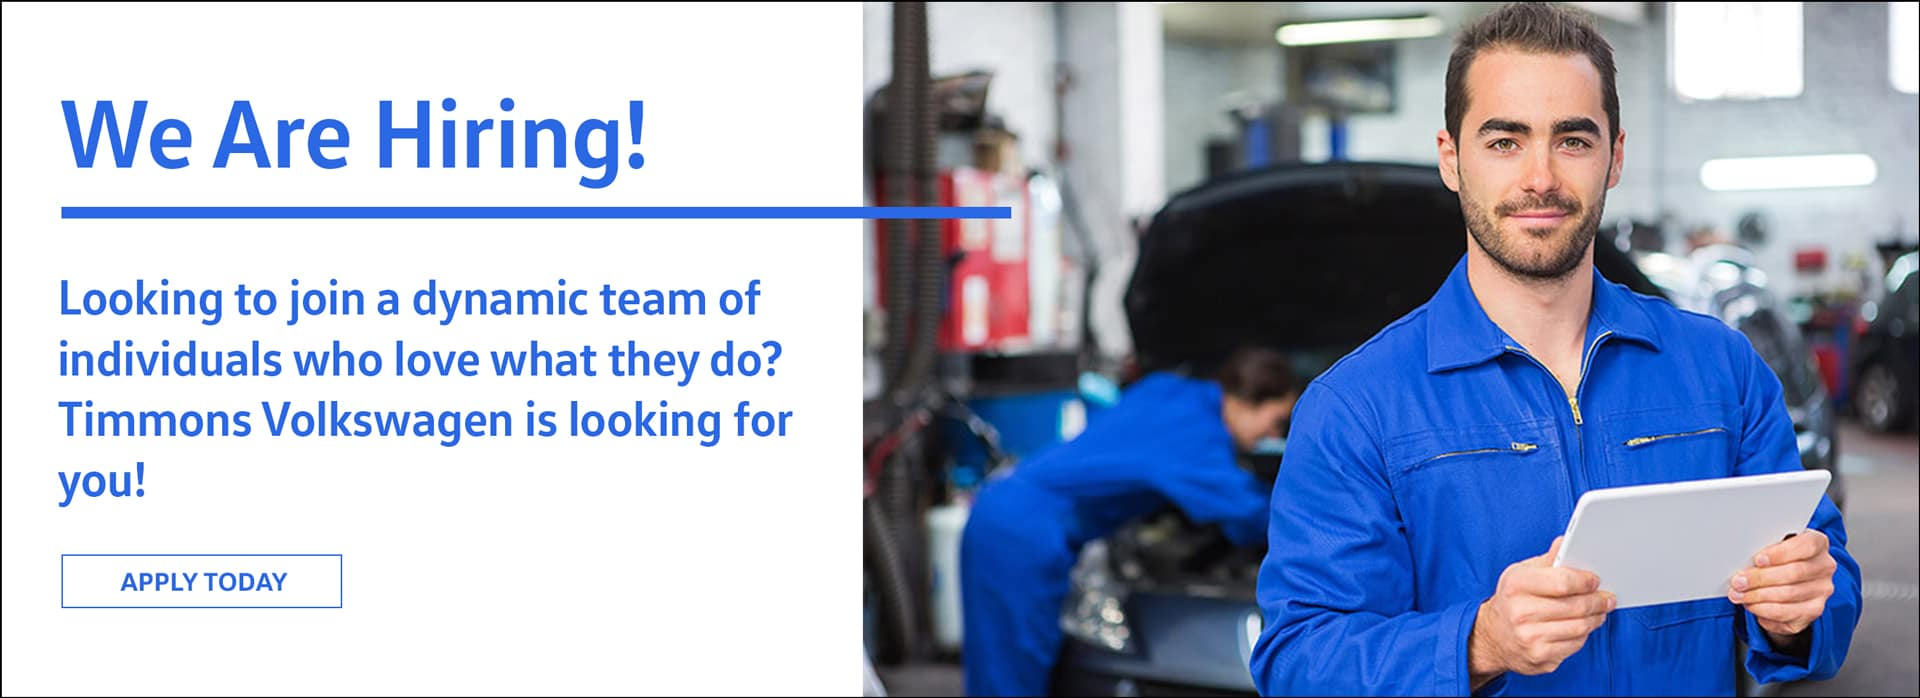 Job Opportunities at Timmons Volkswagen Long Beach